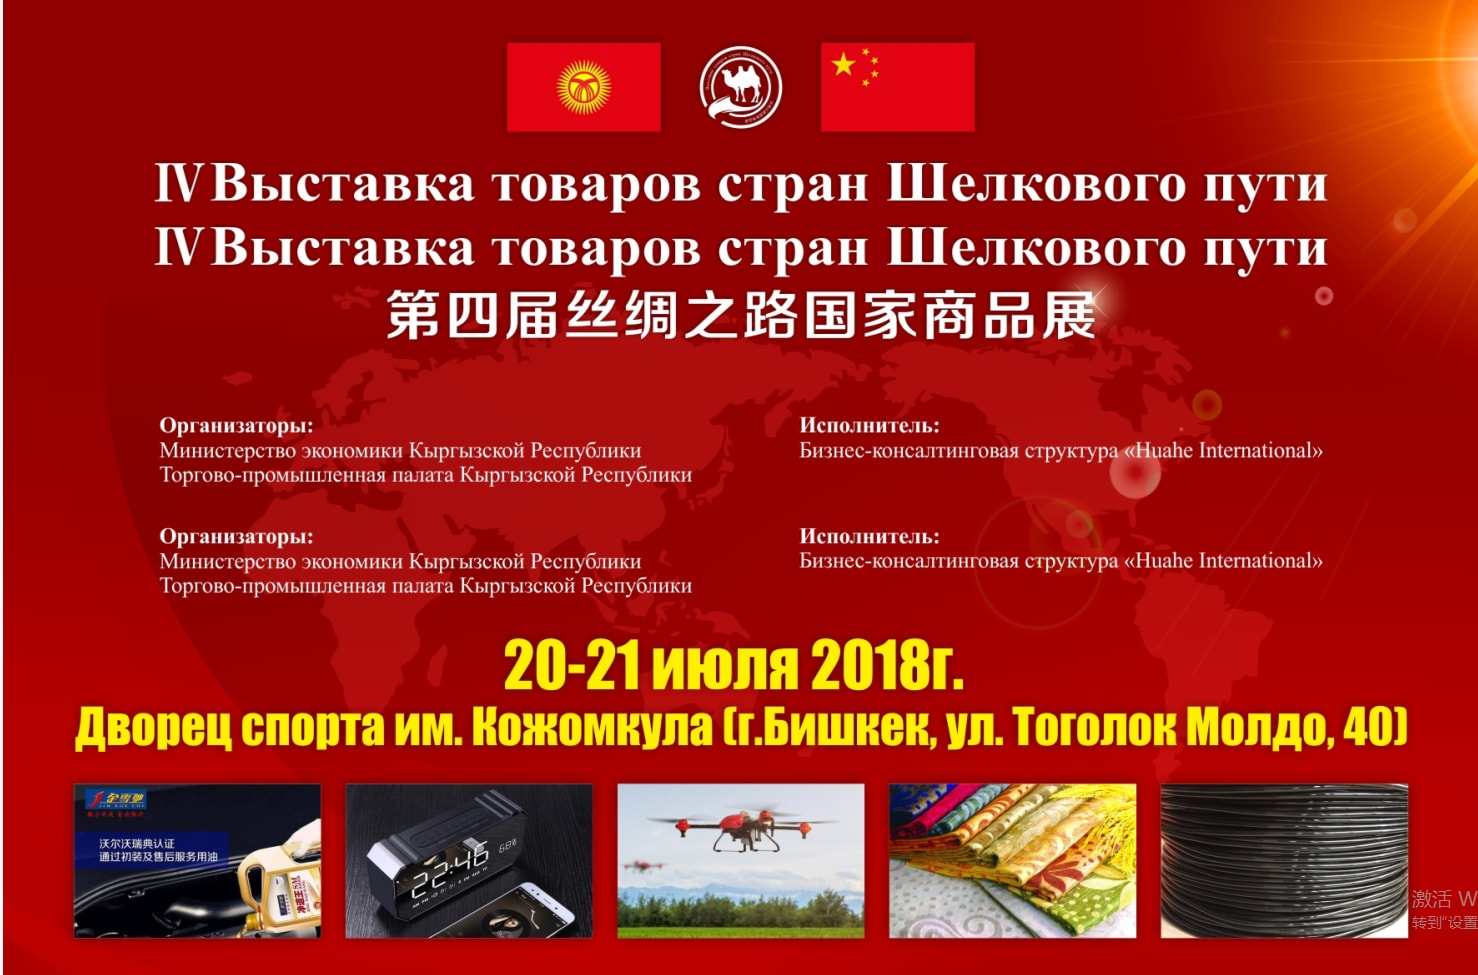 The Fourth Exhibition of Silk Road Products is a trade fair of manufacturers of goods and products from Chinese factories.